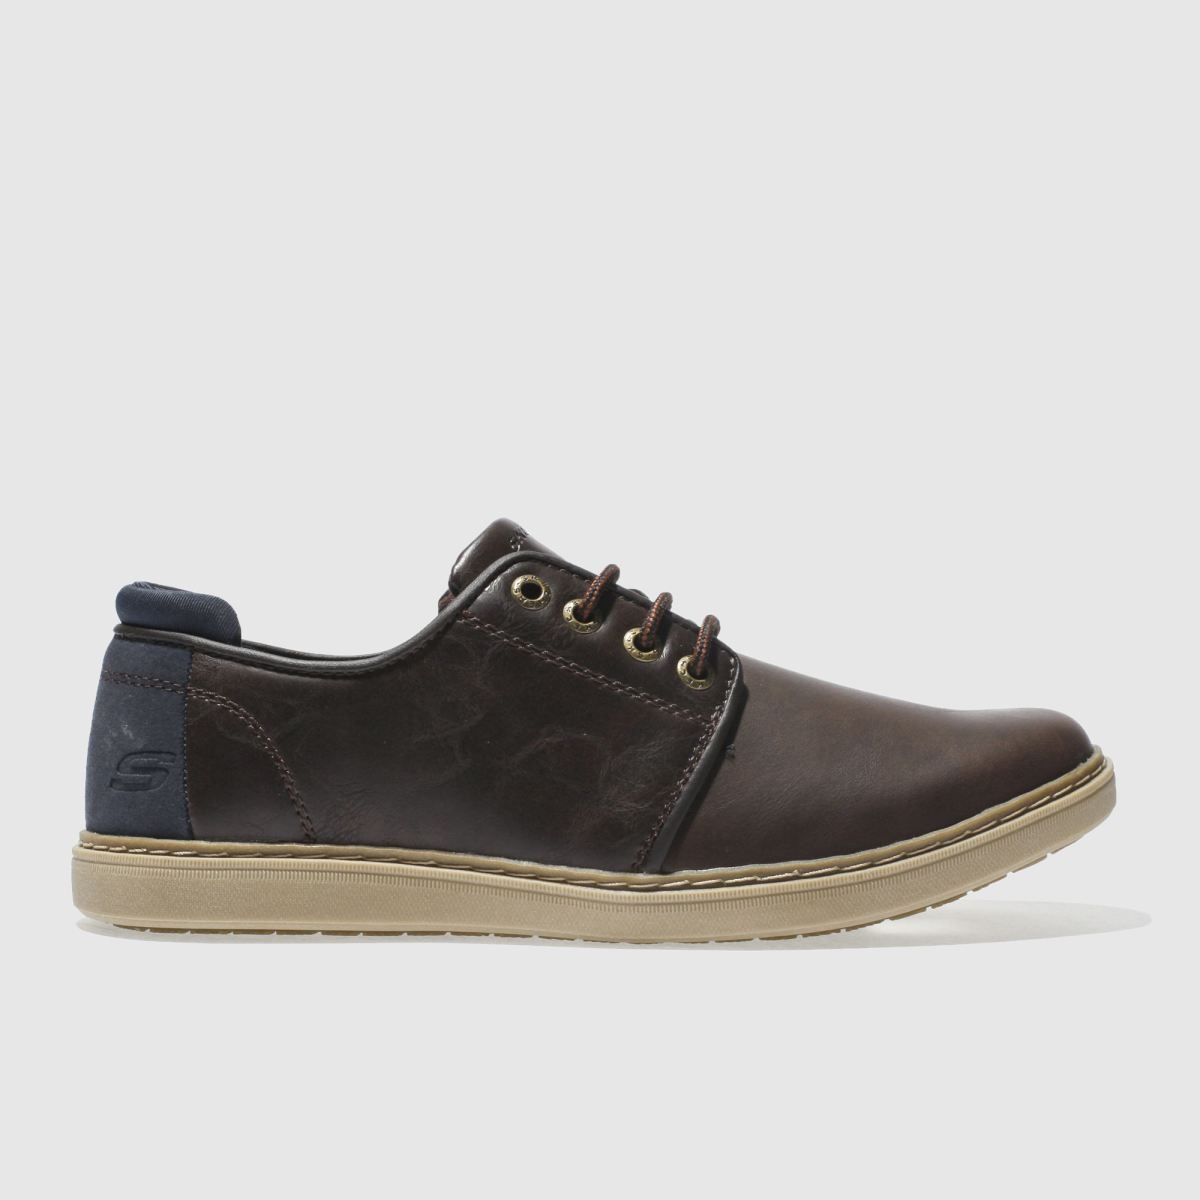 Skechers Dark Brown Lanson Vernes Shoes